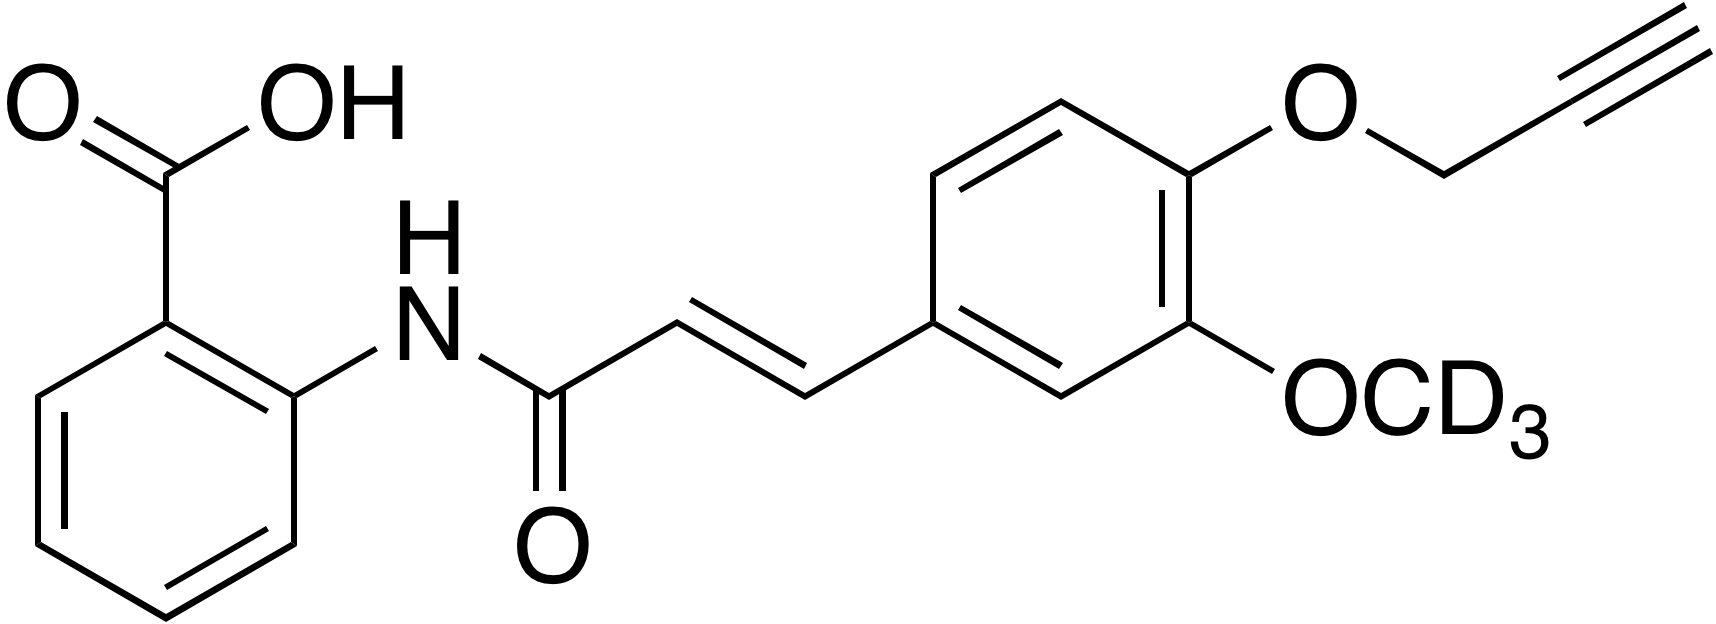 3-Methoxy-d<sub>3</sub>-4-propargyloxycinnamoyl anthranilate